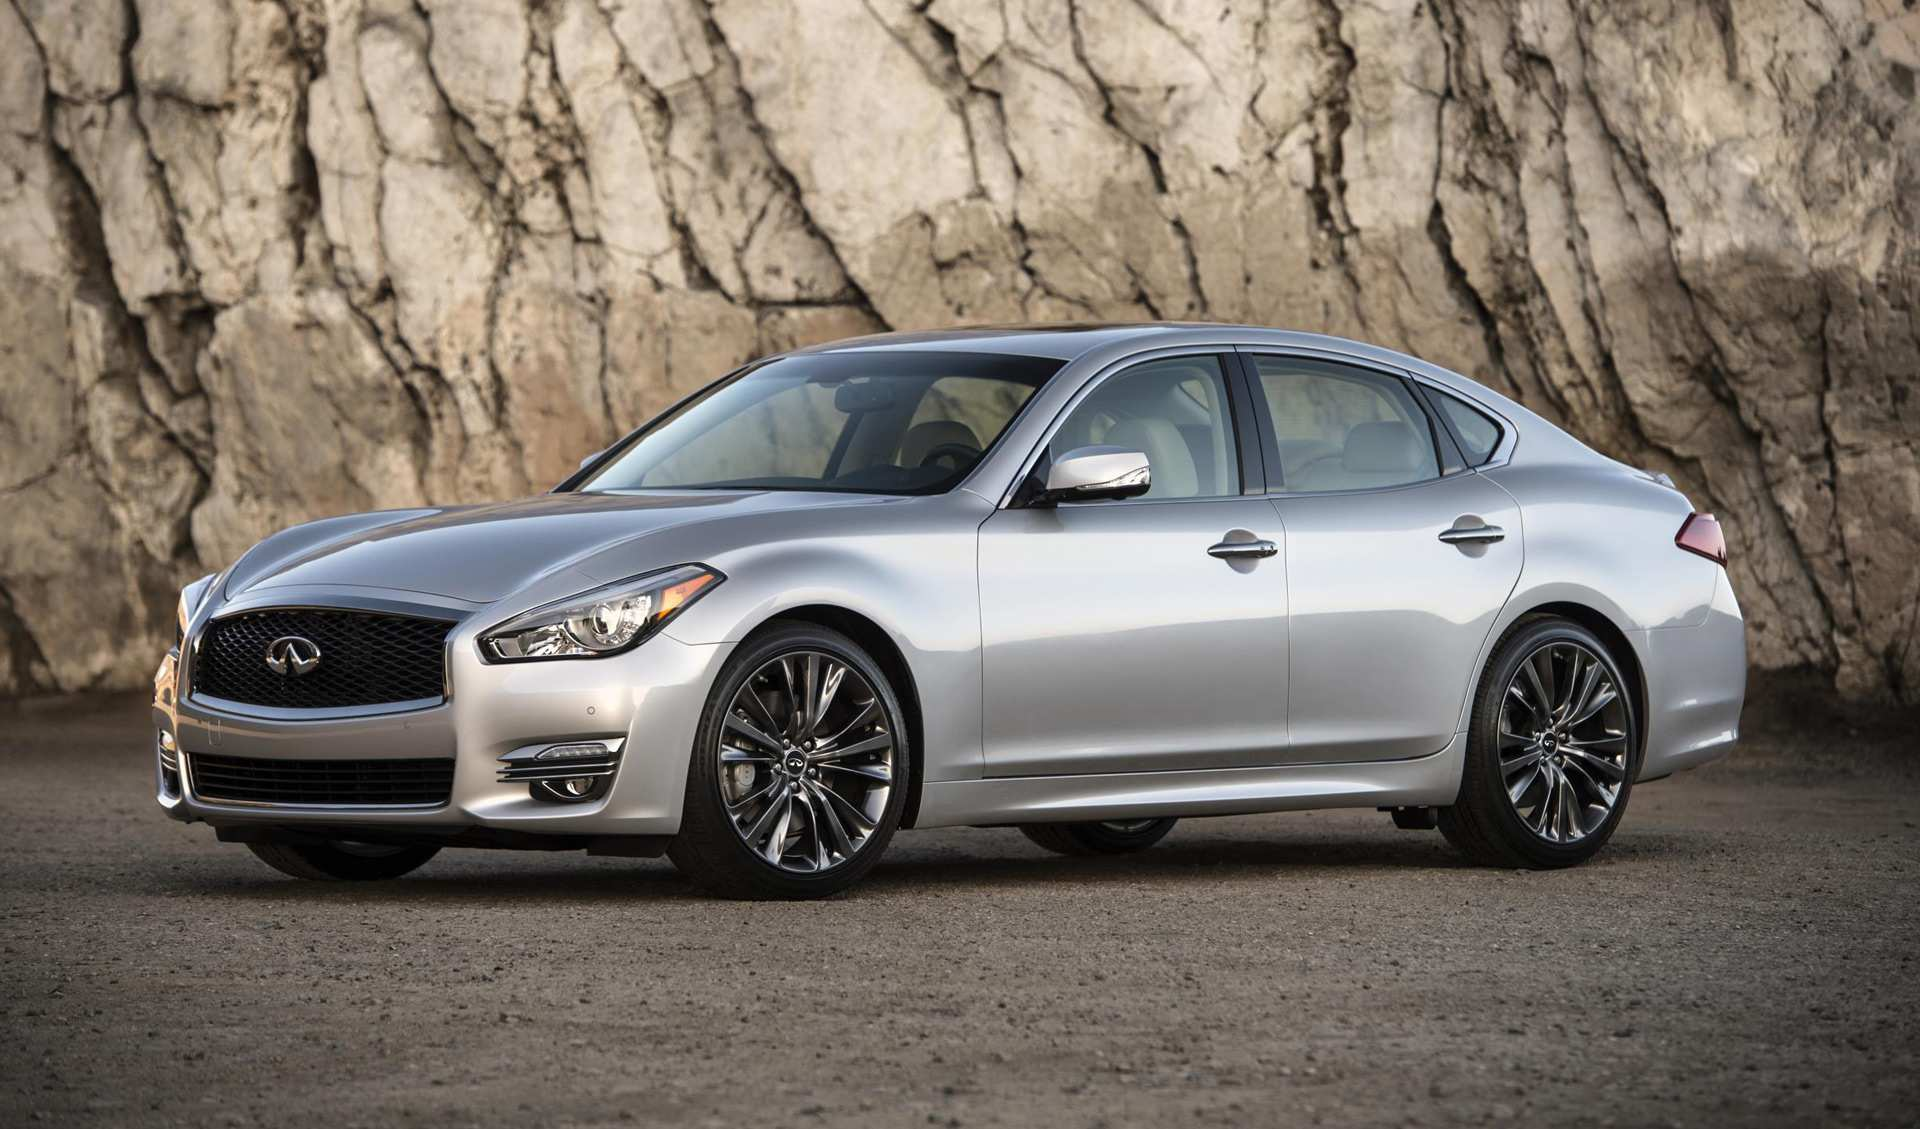 40 All New New Infiniti Q70 2020 Release Date with New Infiniti Q70 2020